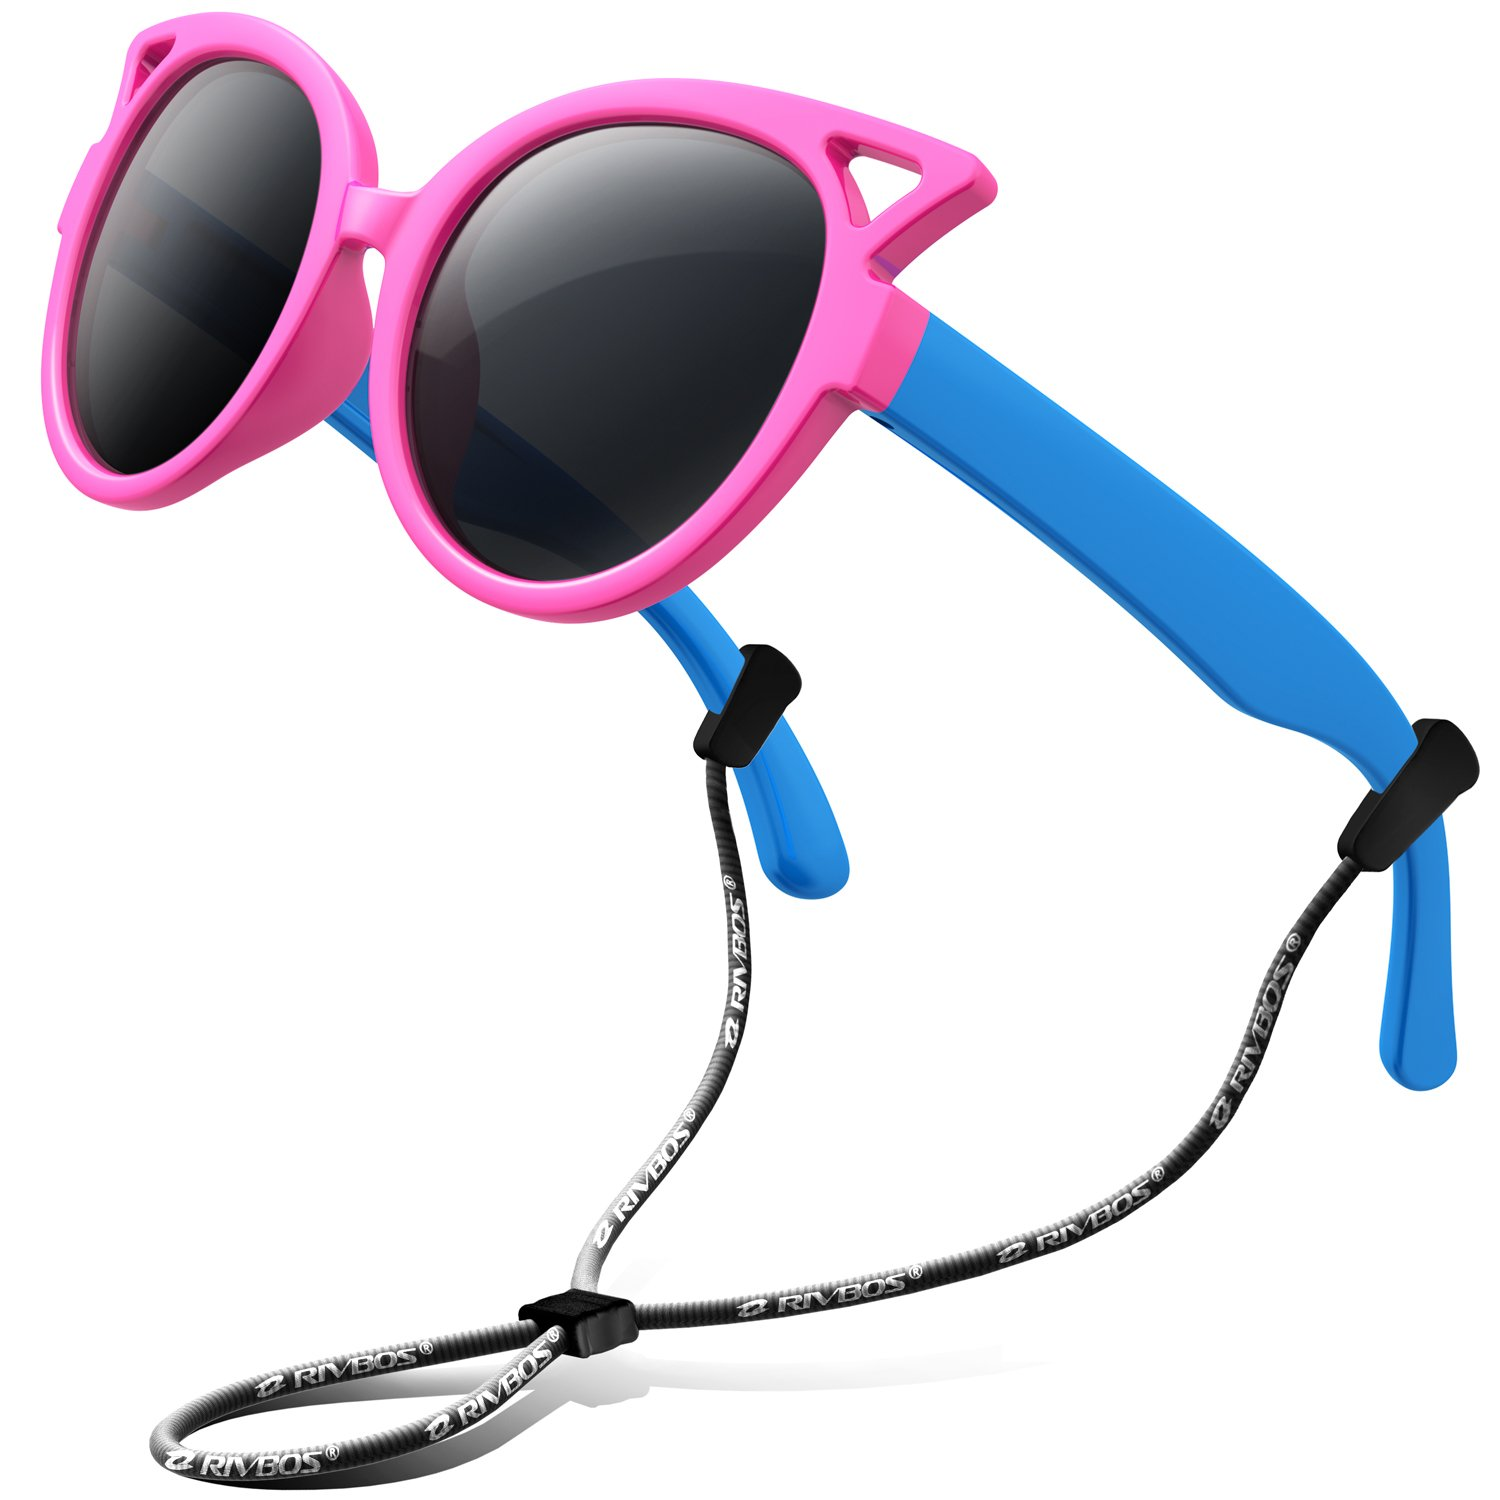 9c7963a34a4 Amazon.com  RIVBOS Rubber Kids Polarized Sunglasses With Strap Glasses  Shades for Boys Girls Baby and Children Age 3-10 RBK002 (rose red)  Clothing